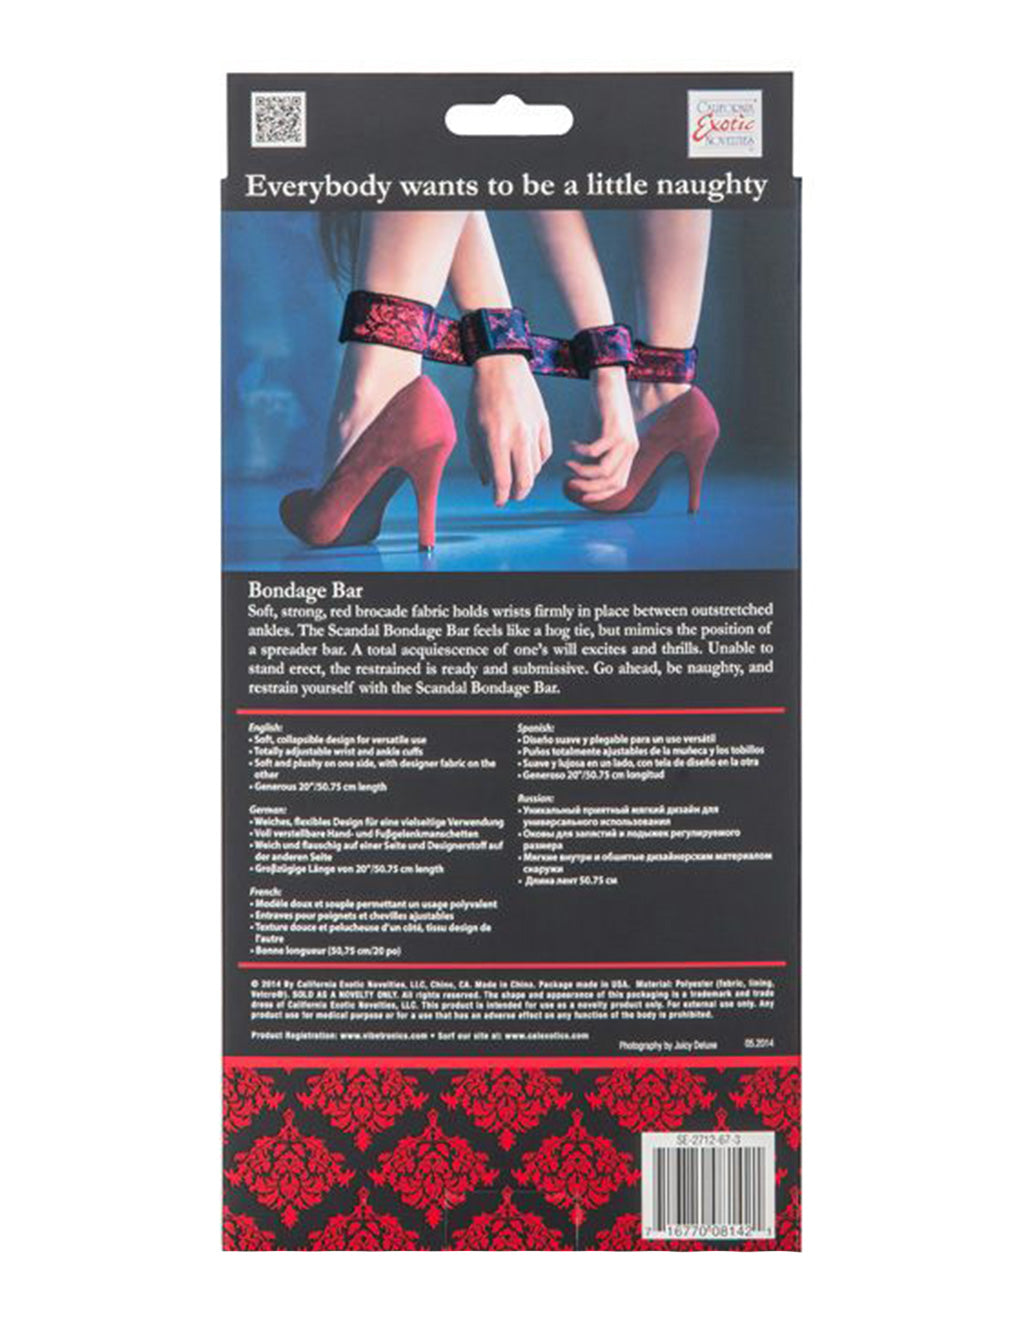 Scandal Bondage Bar Restraints - Fetish BDSM - Restraints